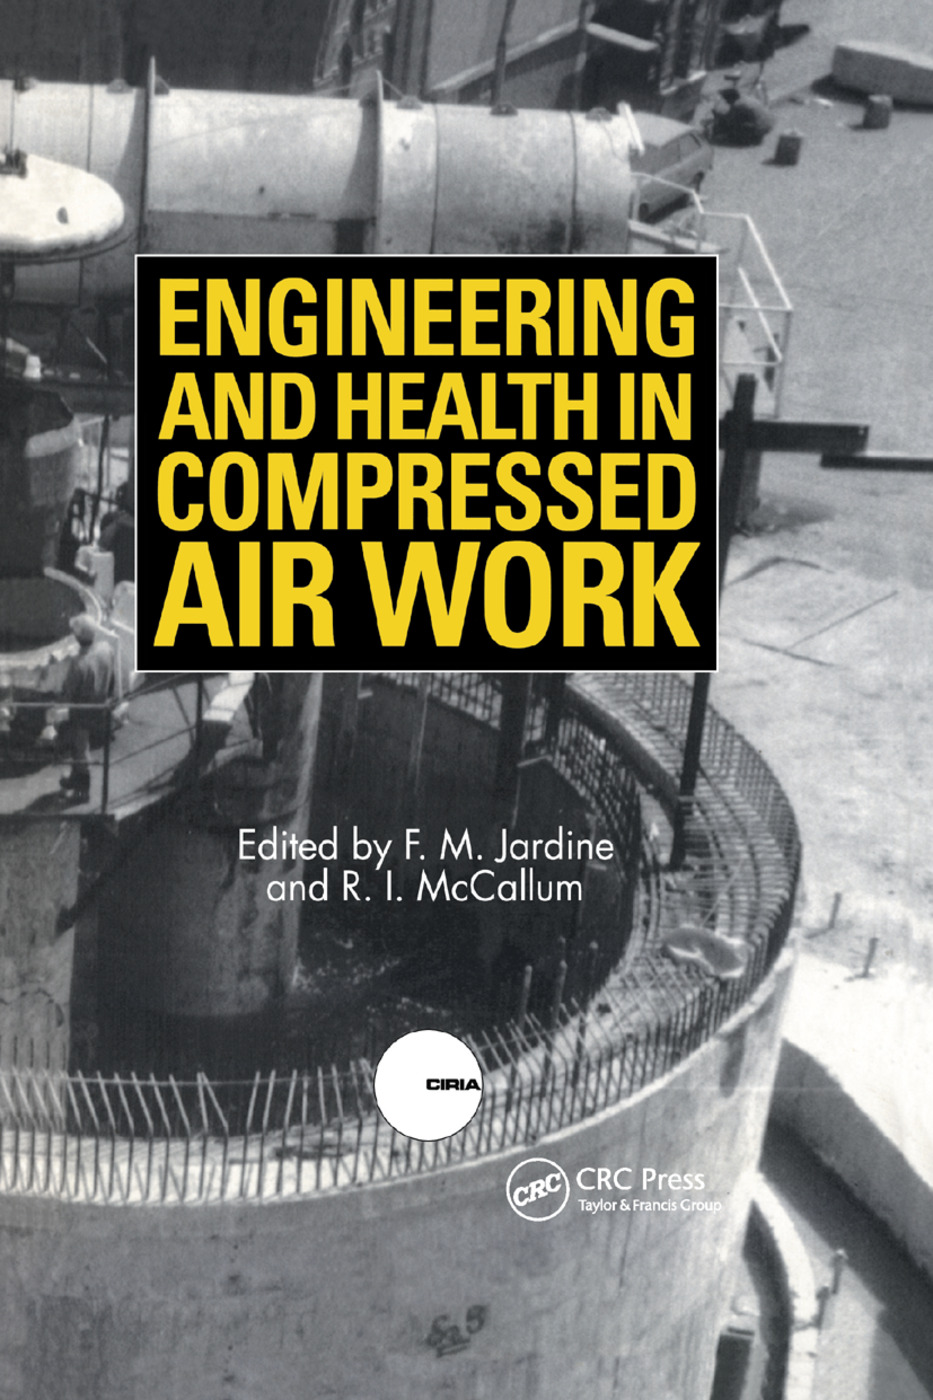 Engineering and Health in Compressed Air Work: Proceedings of the International Conference, Oxford, September 1992 book cover